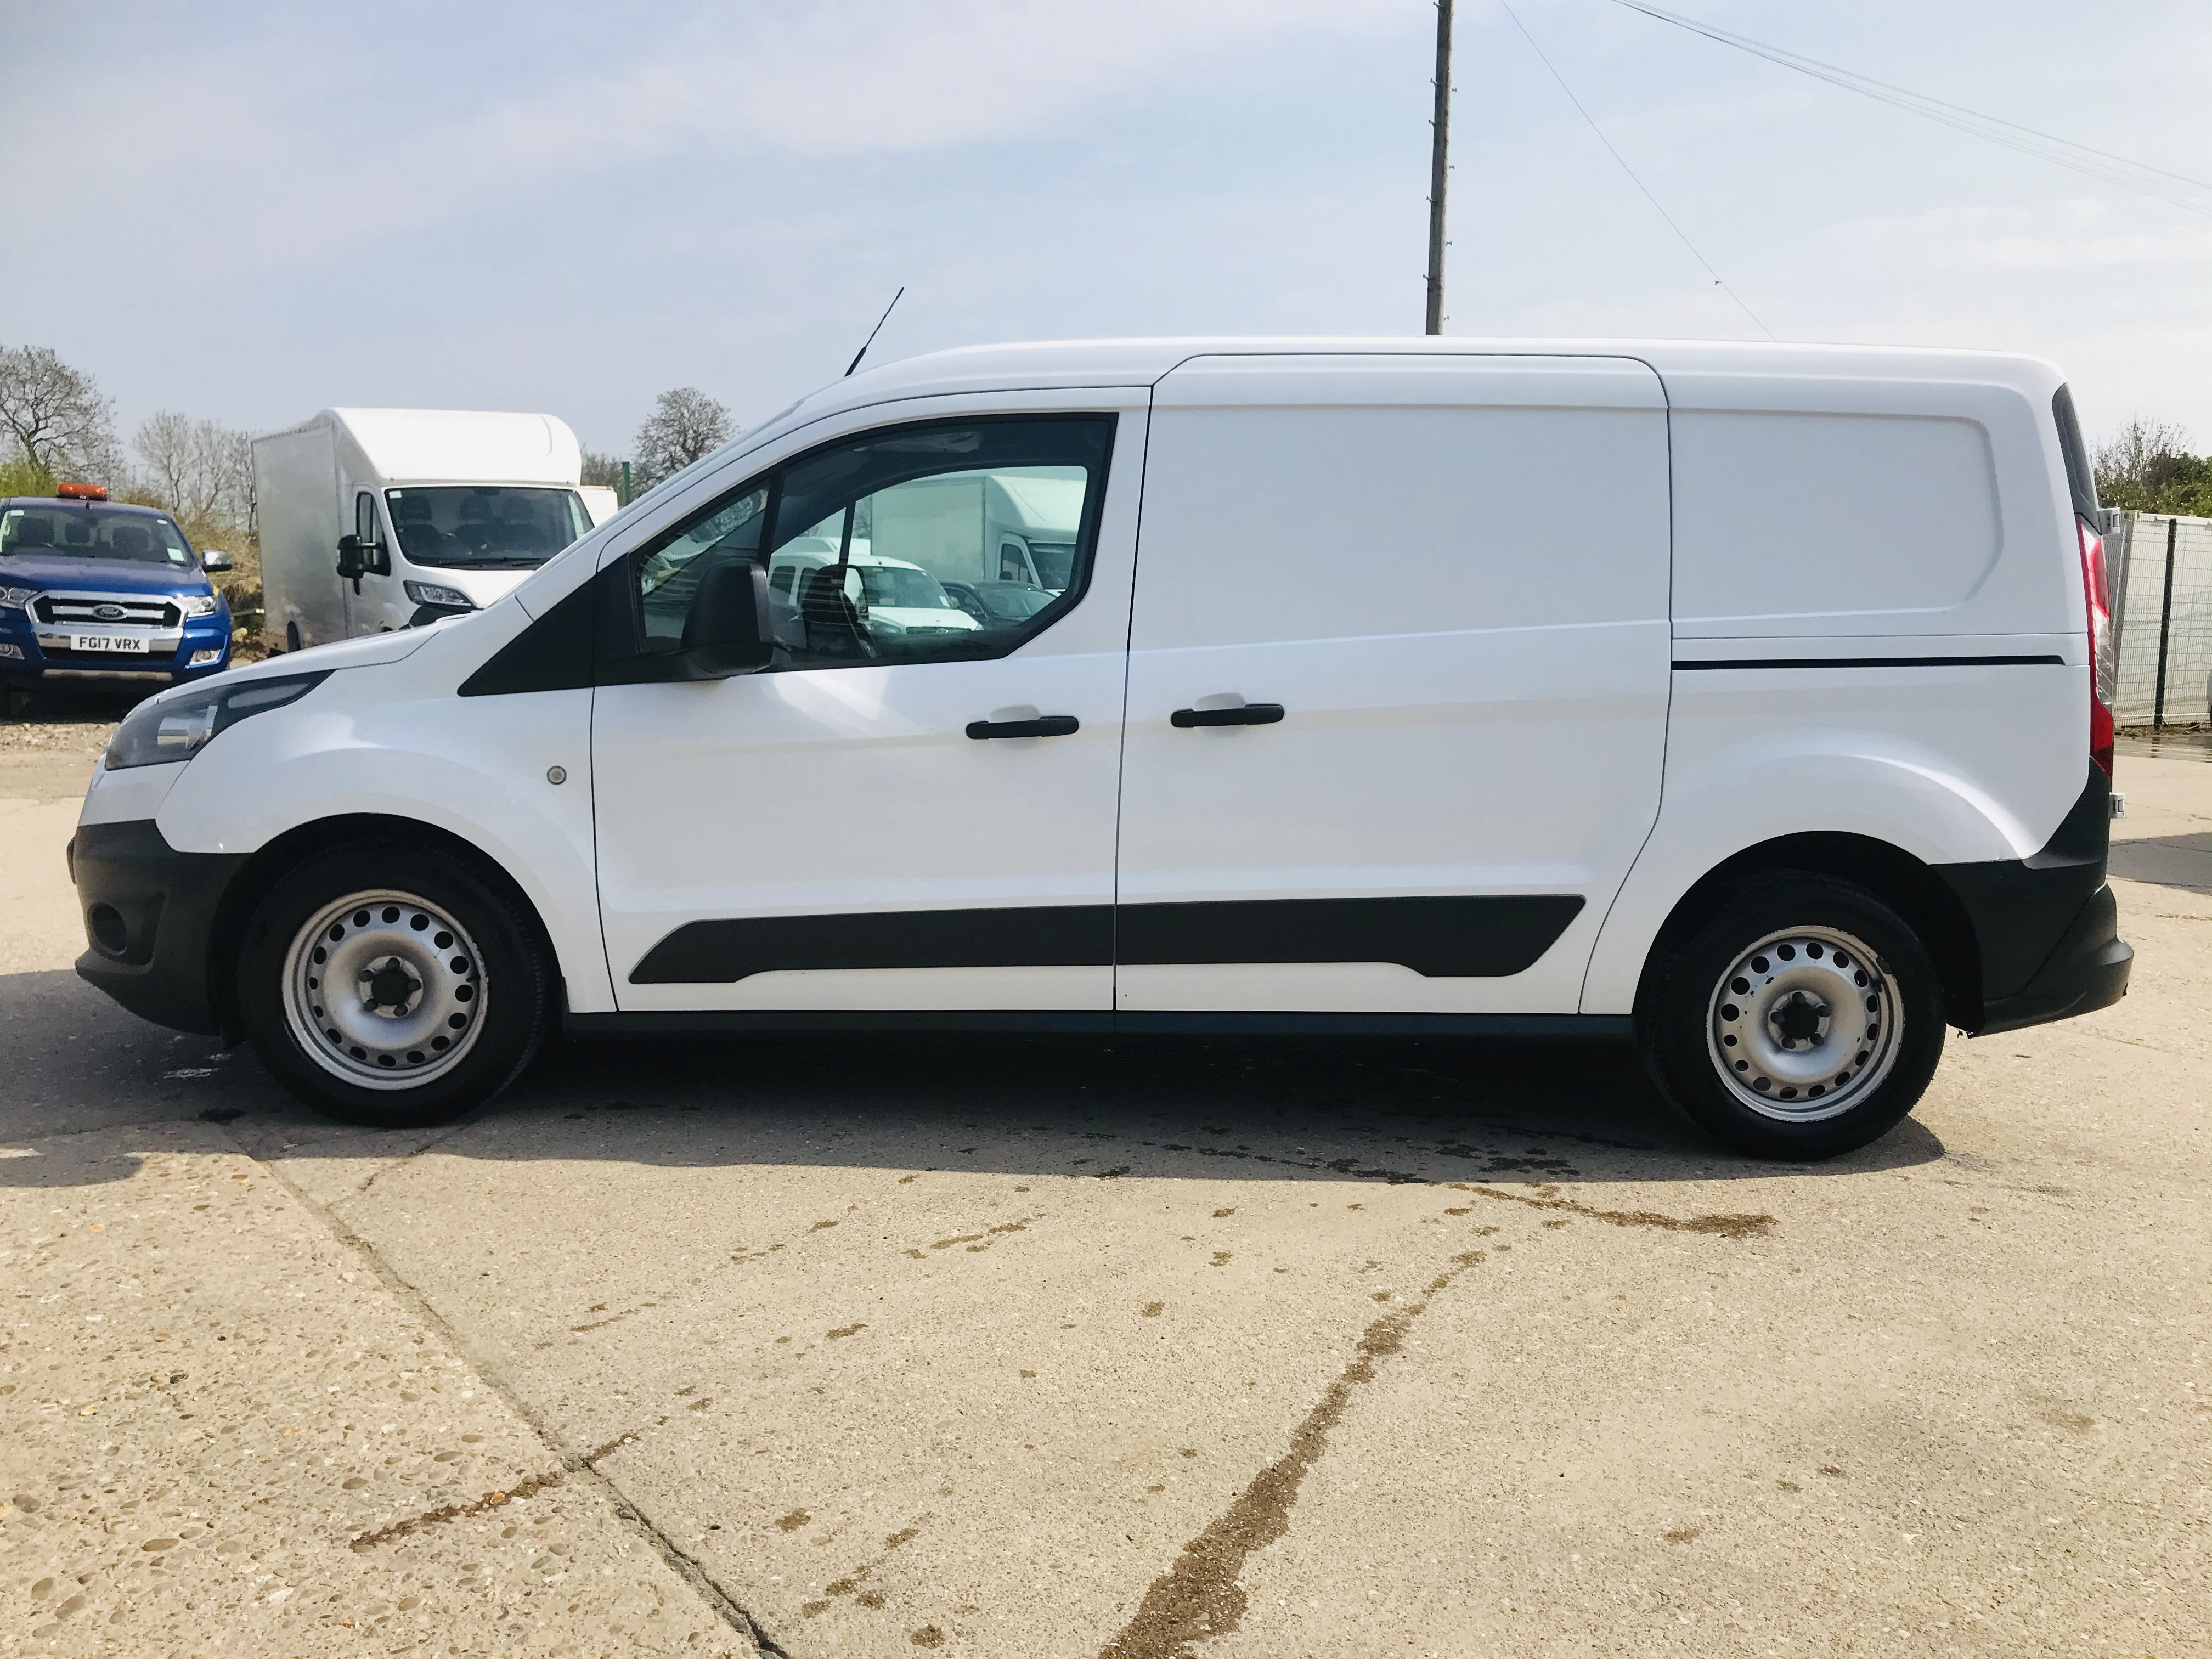 """ON SALE FORD TRANSIT CONNECT 1.6TDCI ECO-TECH 'LWB' 2017 REG - 1 OWNER - FSH - EURO 6""""ULEZ COMPLIANT - Image 8 of 30"""